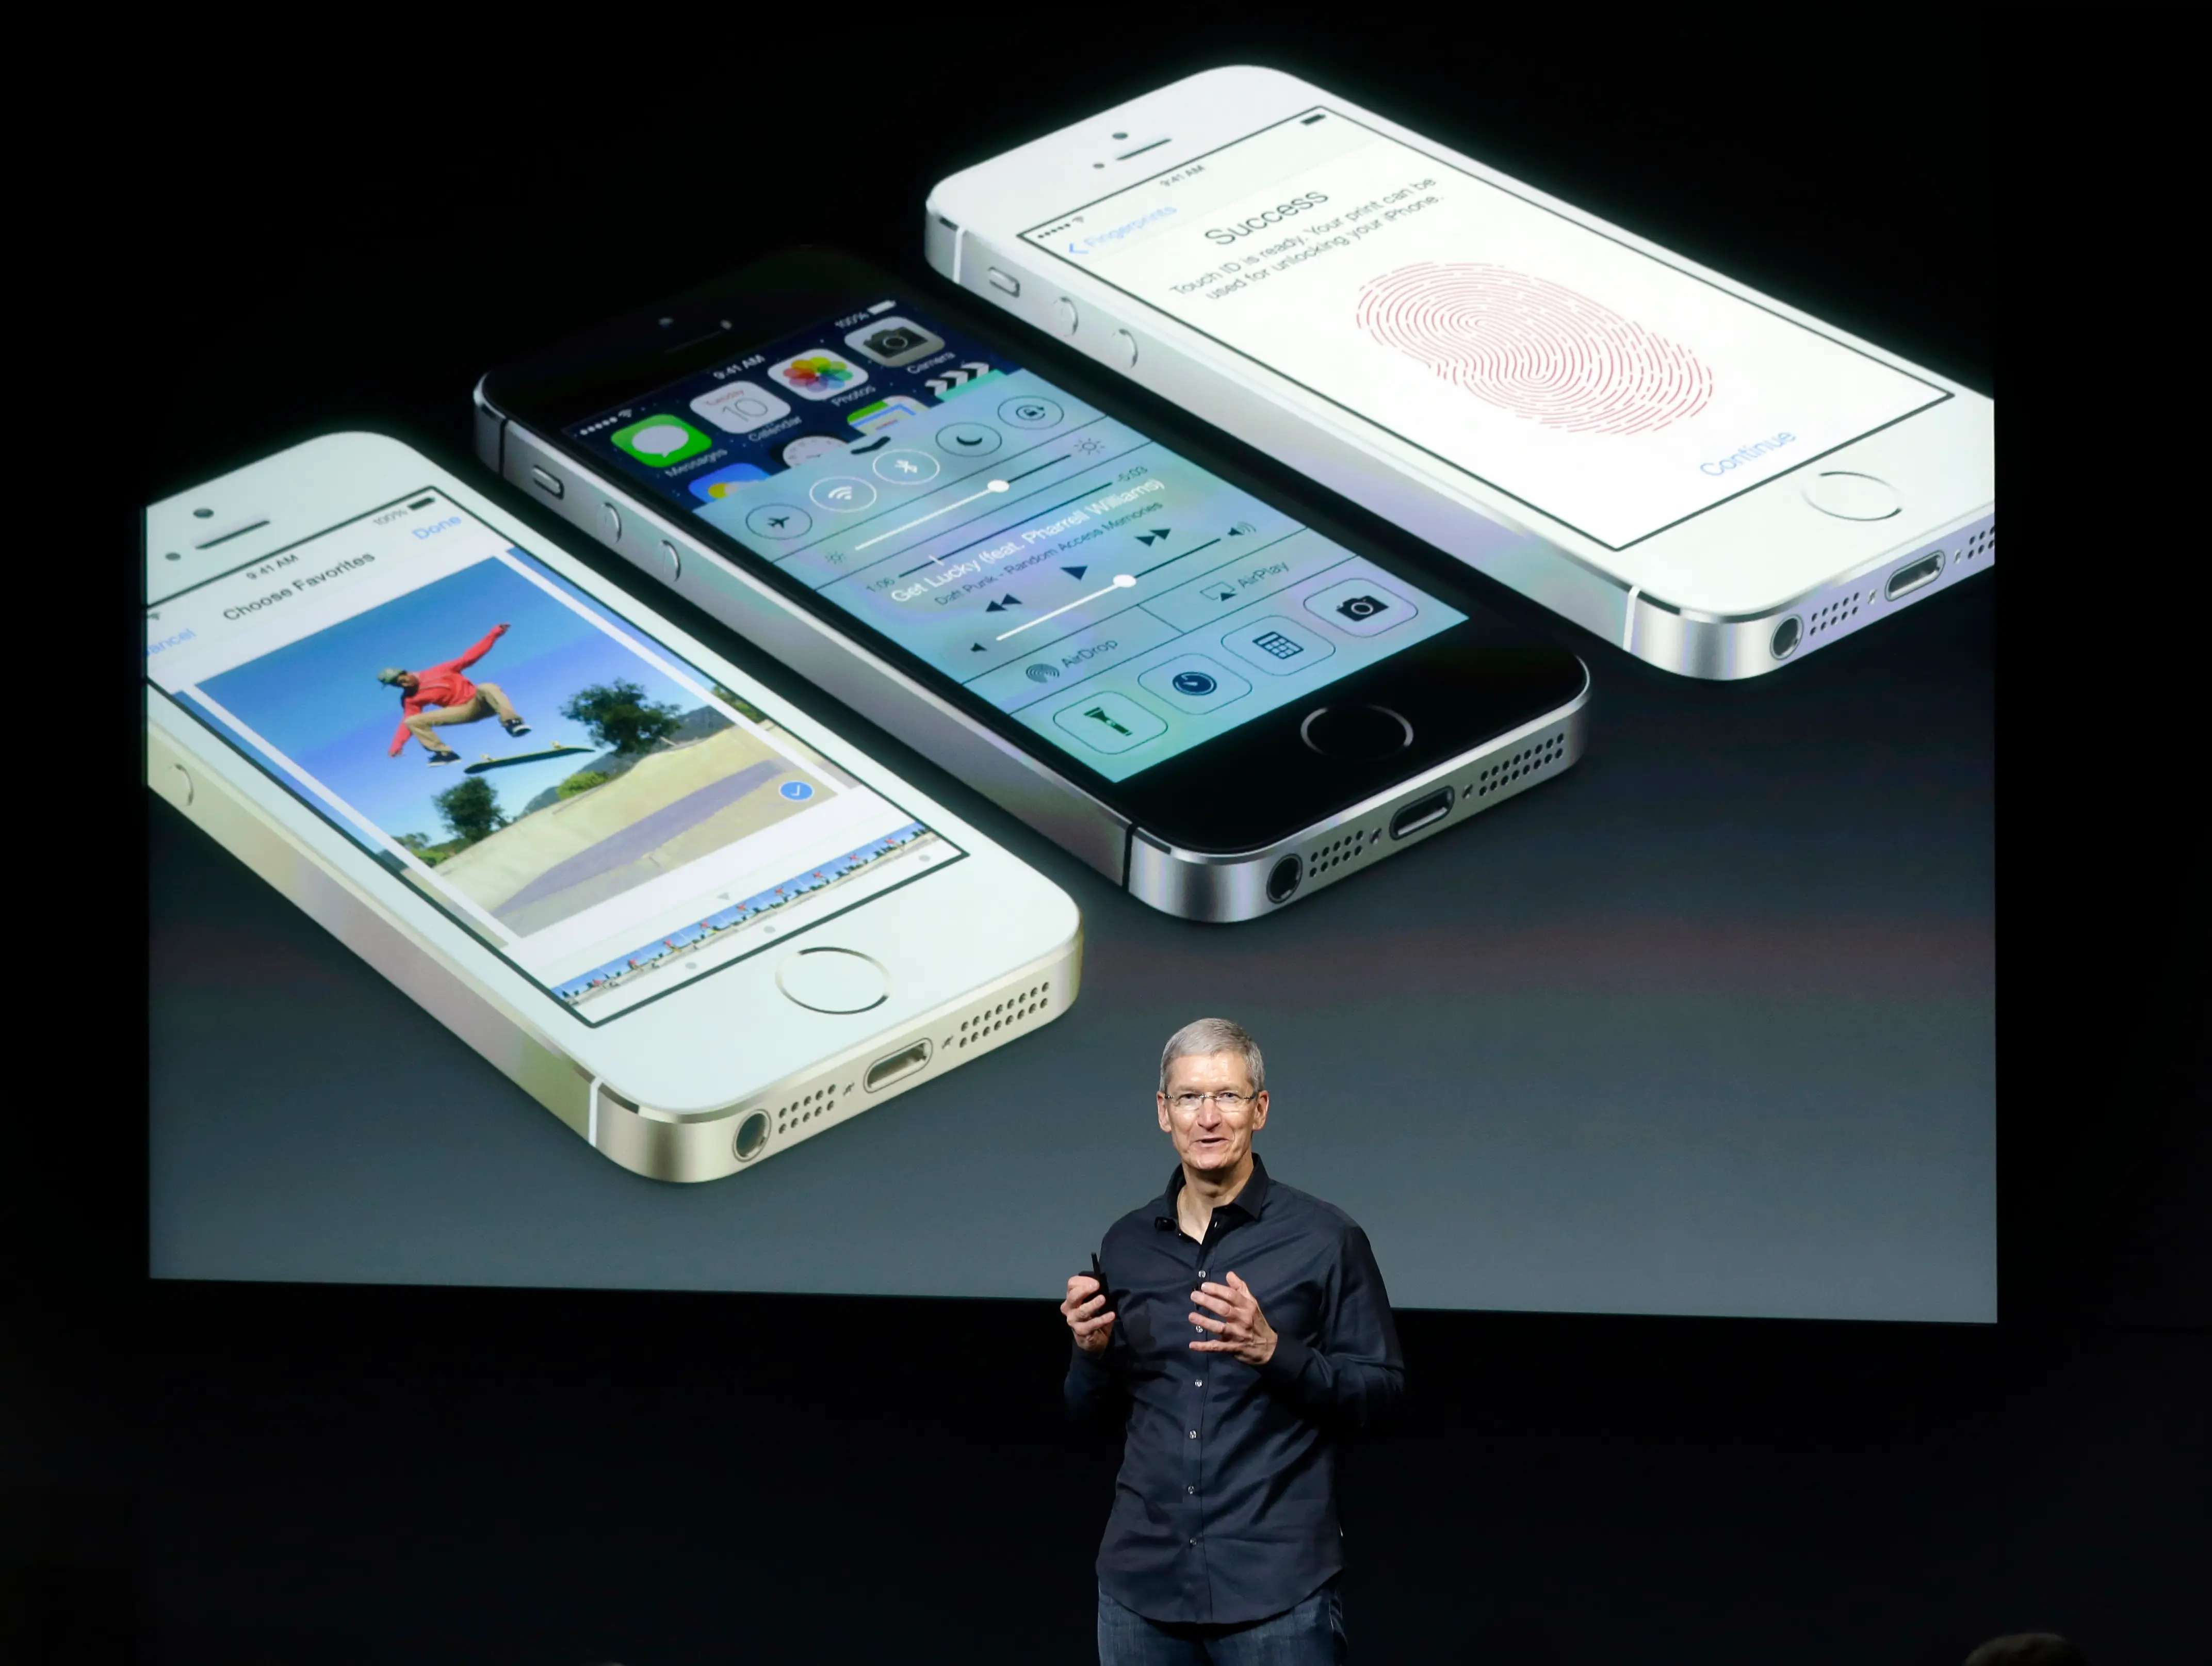 A week later, Tim Cook announced two new Apple phones: the iPhone 5C and 5S.